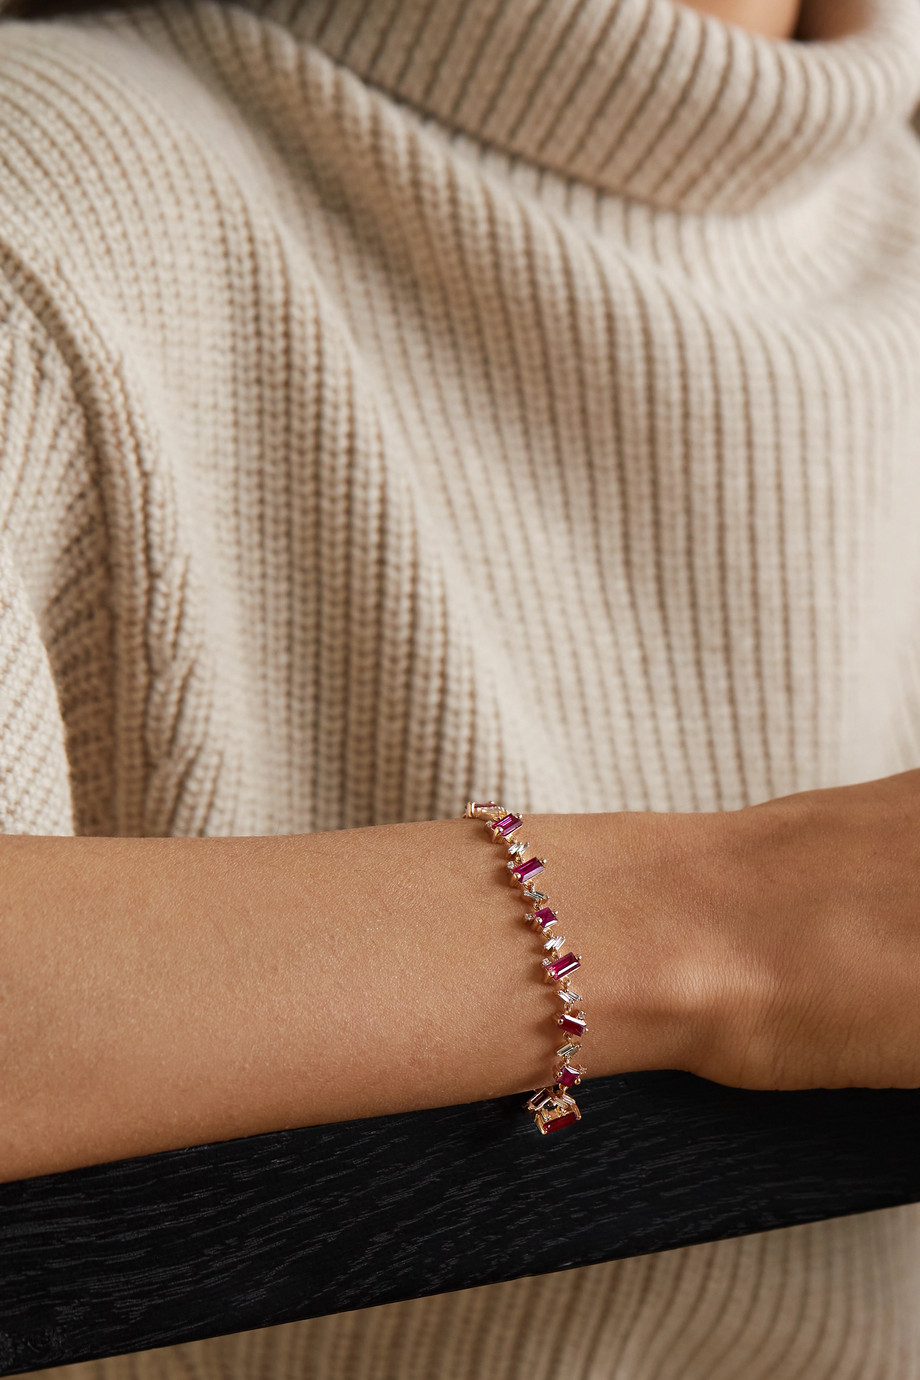 Suzanne Kalan 18-karat rose gold, ruby and diamond bracelet